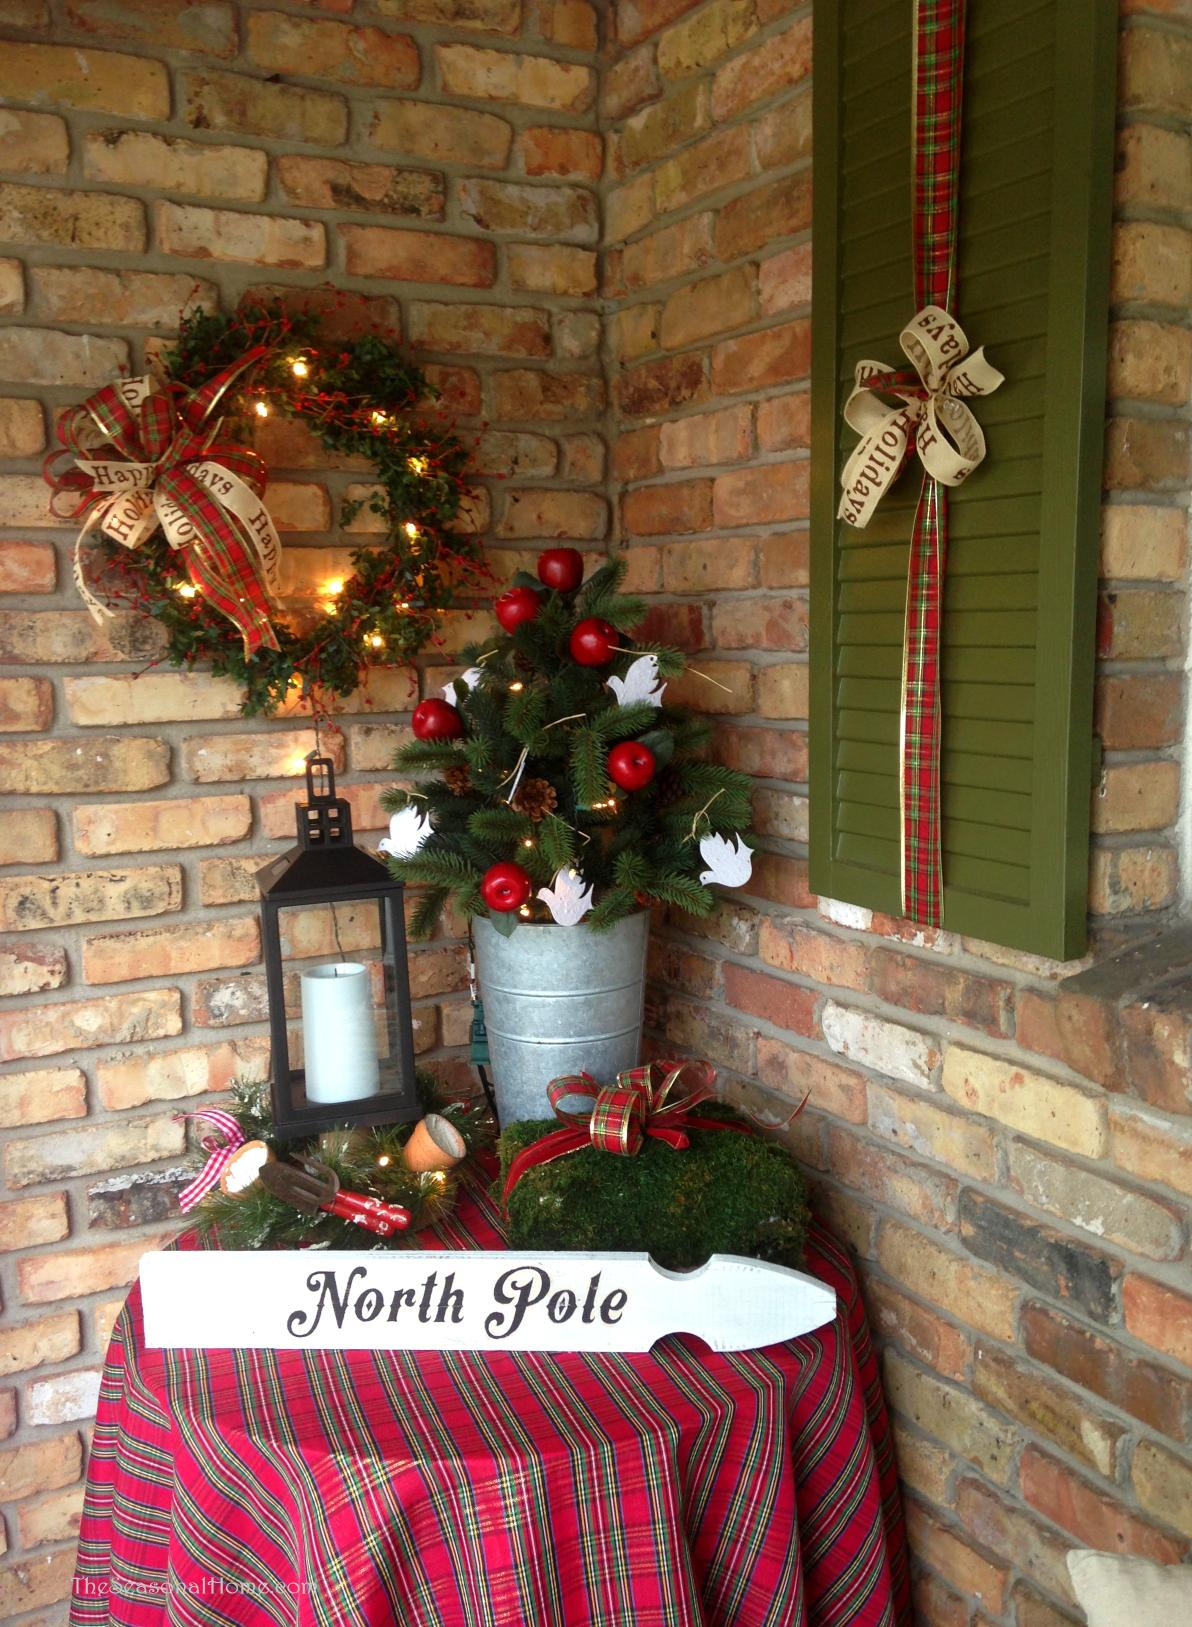 New Christmas Decorating Ideas For 2014 christmas 2014 + 2 videos! :) « the seasonal home